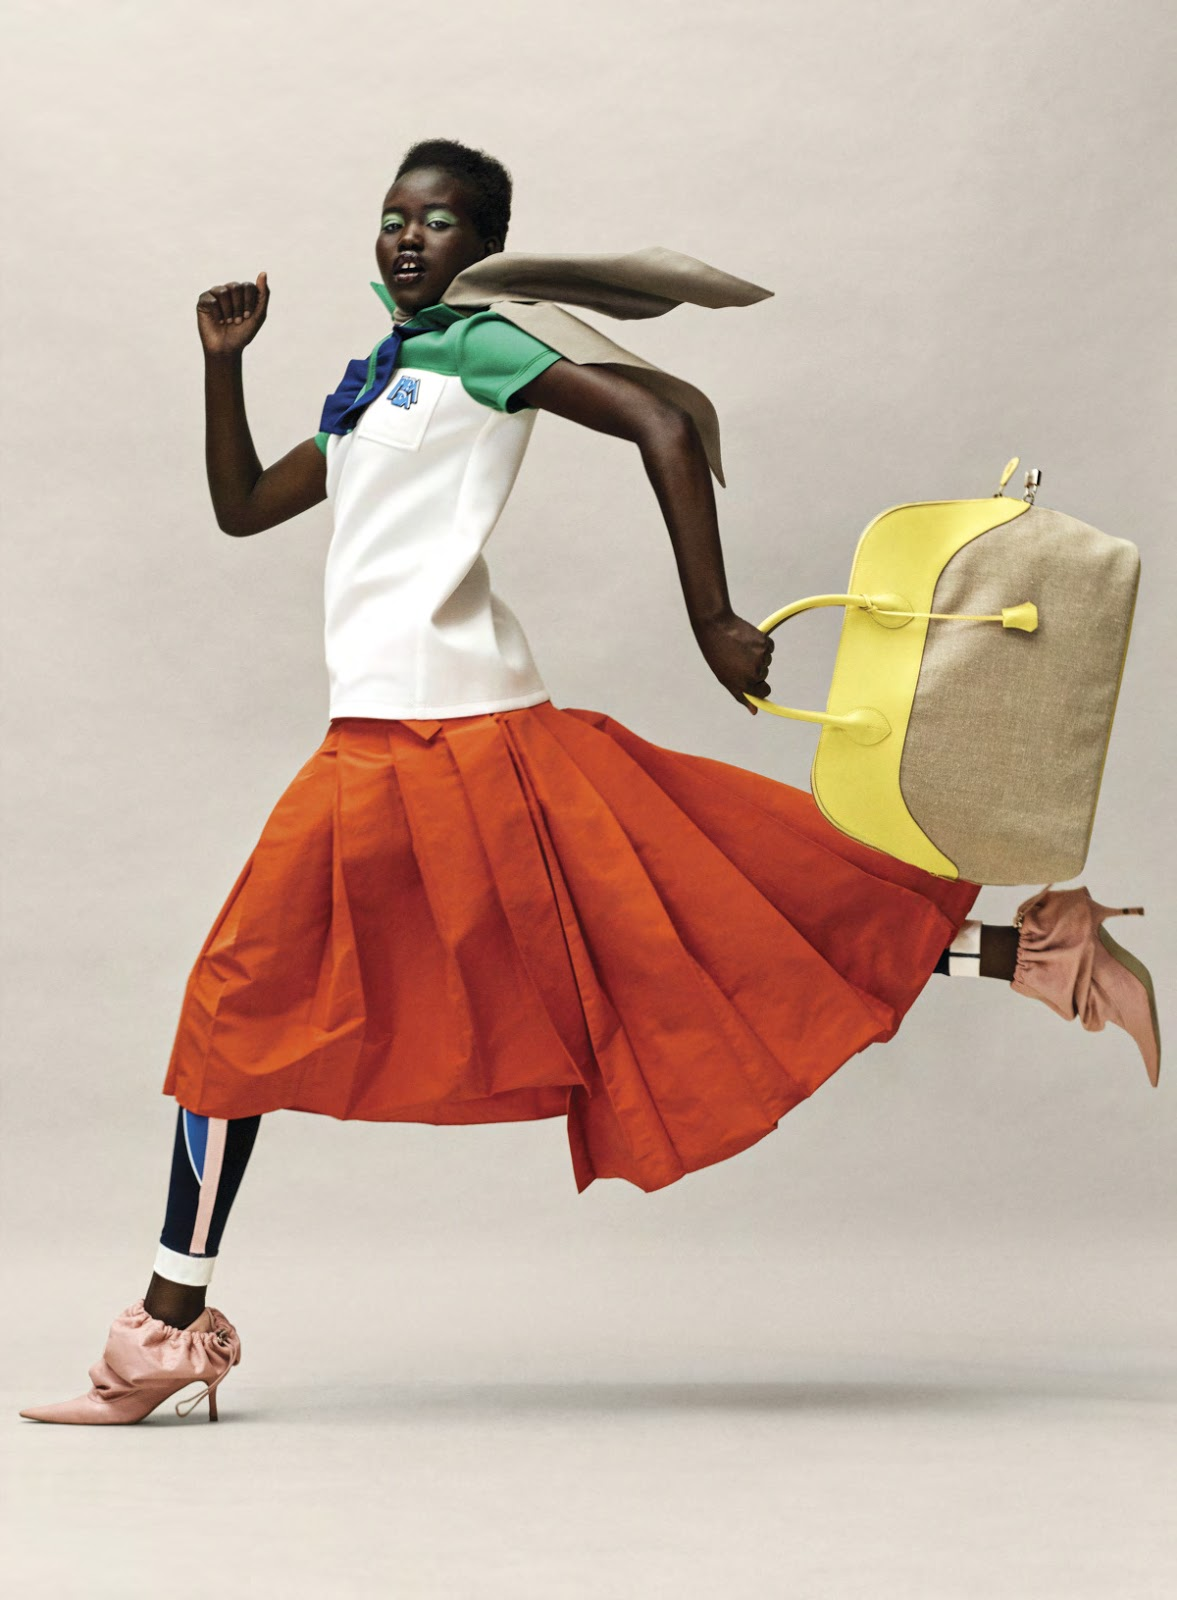 Adut Akech by Josh Olins for Vogue US January 2019 (10).jpg